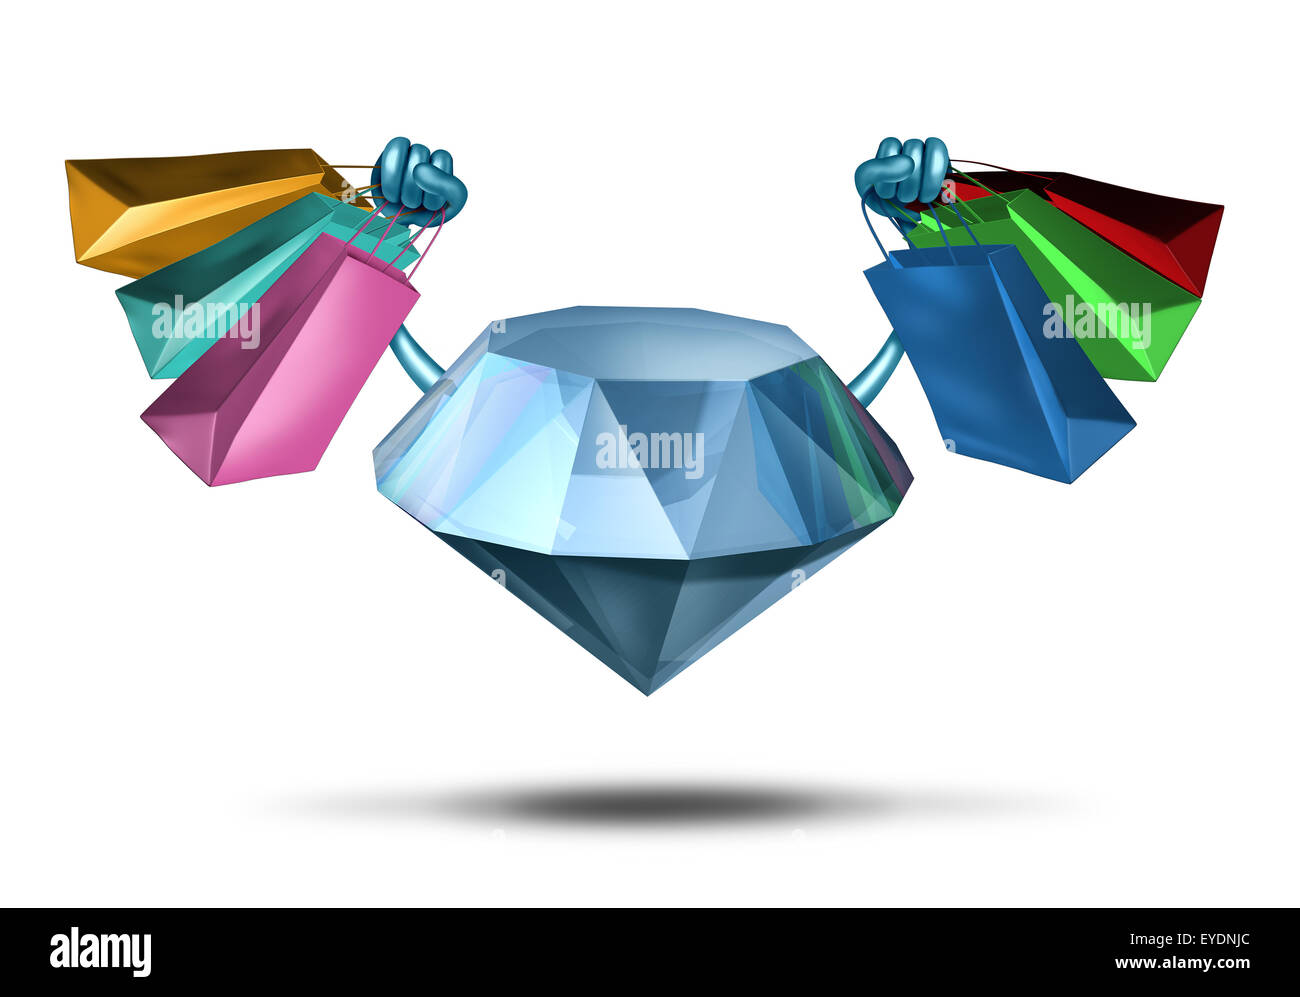 Luxury shopping and high living premium shopper service as a diamond character holding a group of shoppingbags as - Stock Image